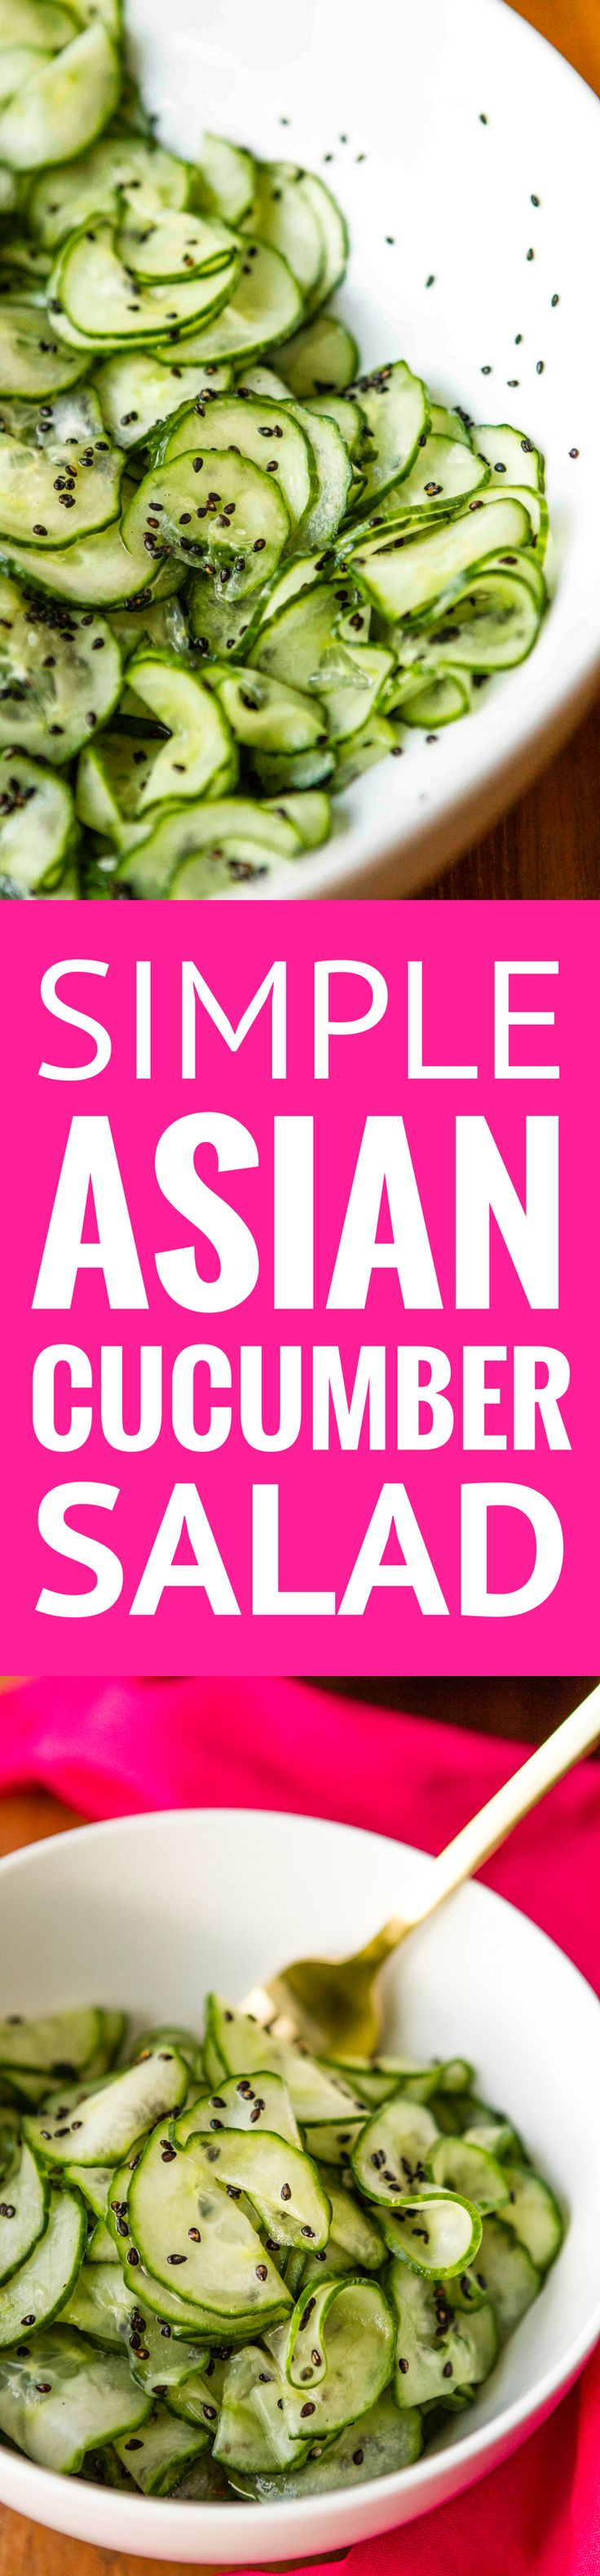 Asian Cucumber Salad -- this simple cucumber salad is super light and refreshing, perfect for hot summer days… Rice vinegar and dark sesame oil, along with toasted sesame seeds give it a delicious Asian flair!   easy cucumber salad   cucumber salad vinegar   healthy cucumber salad   find the recipe on unsophisticook.com